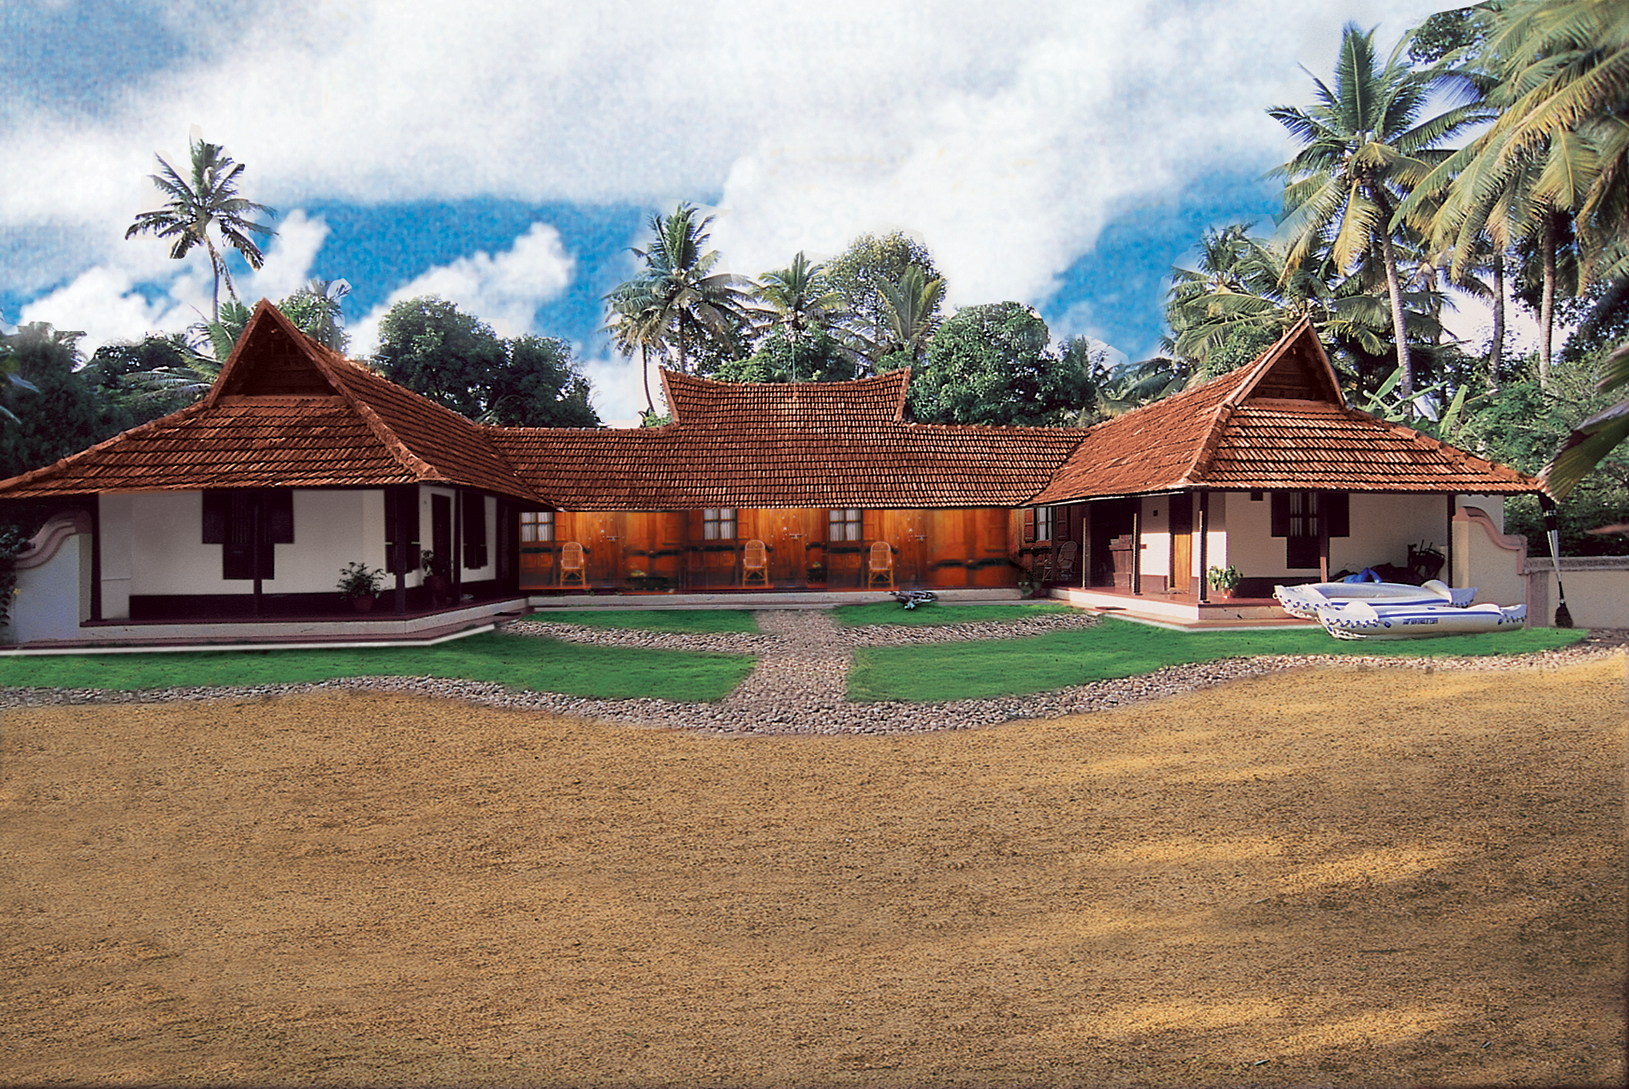 Beautiful Farmhouse In Kerala Kerala S Backwaters See India At A Relaxing Pace Cnn Travel